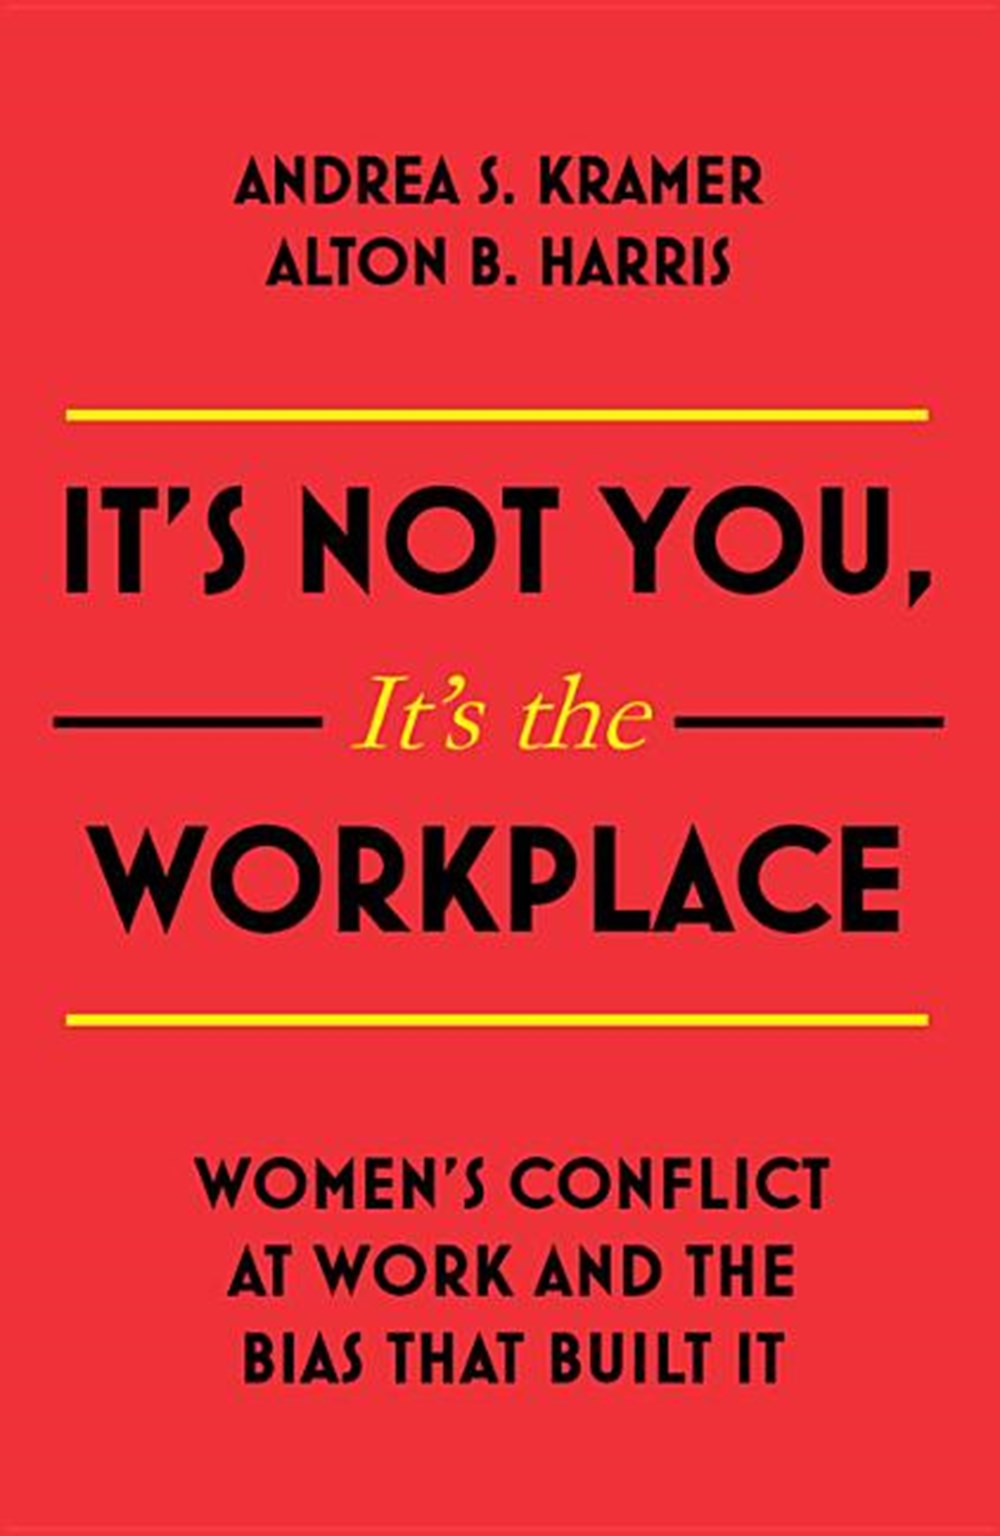 It's Not You It's the Workplace Women's Conflict at Work and the Bias That Built It